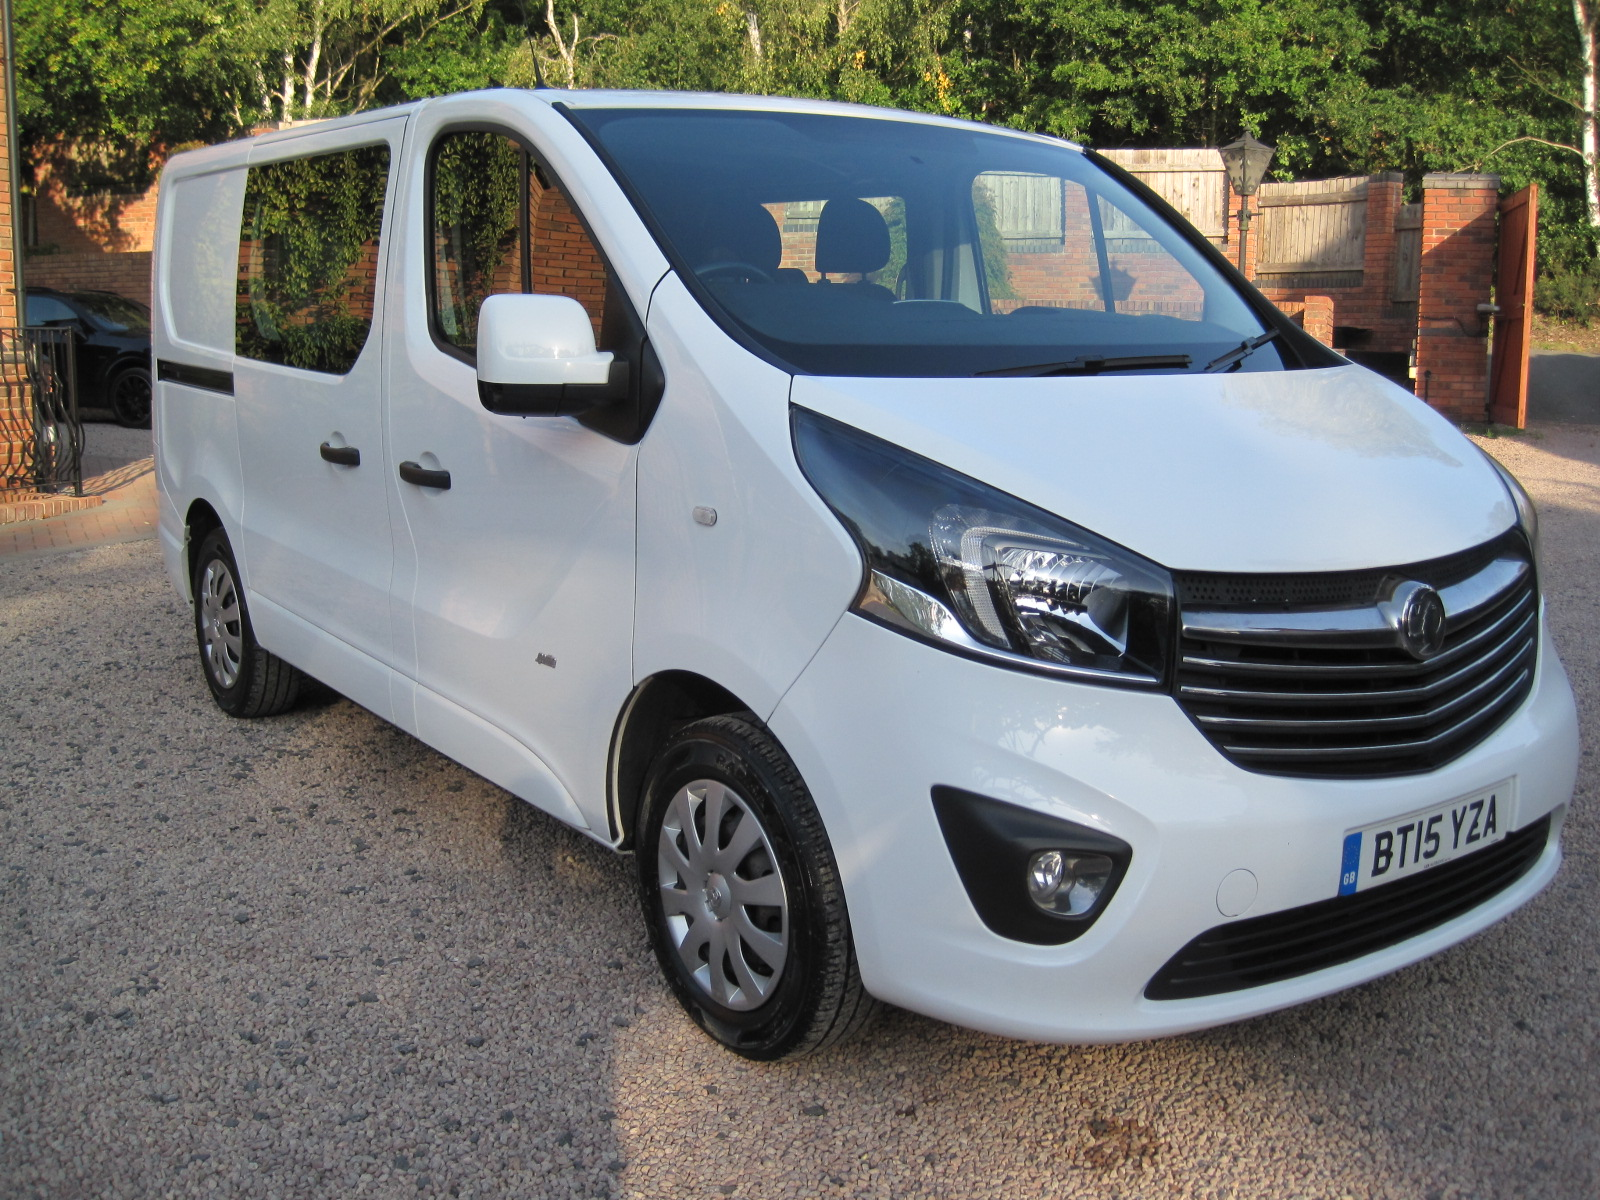 2015 15 Vauxhall Vivaro 2900 Sportive CDTI CREW CAB 6 Speed ABSOLUTELY PRISTINE THROUGHOUT! NO VAT!